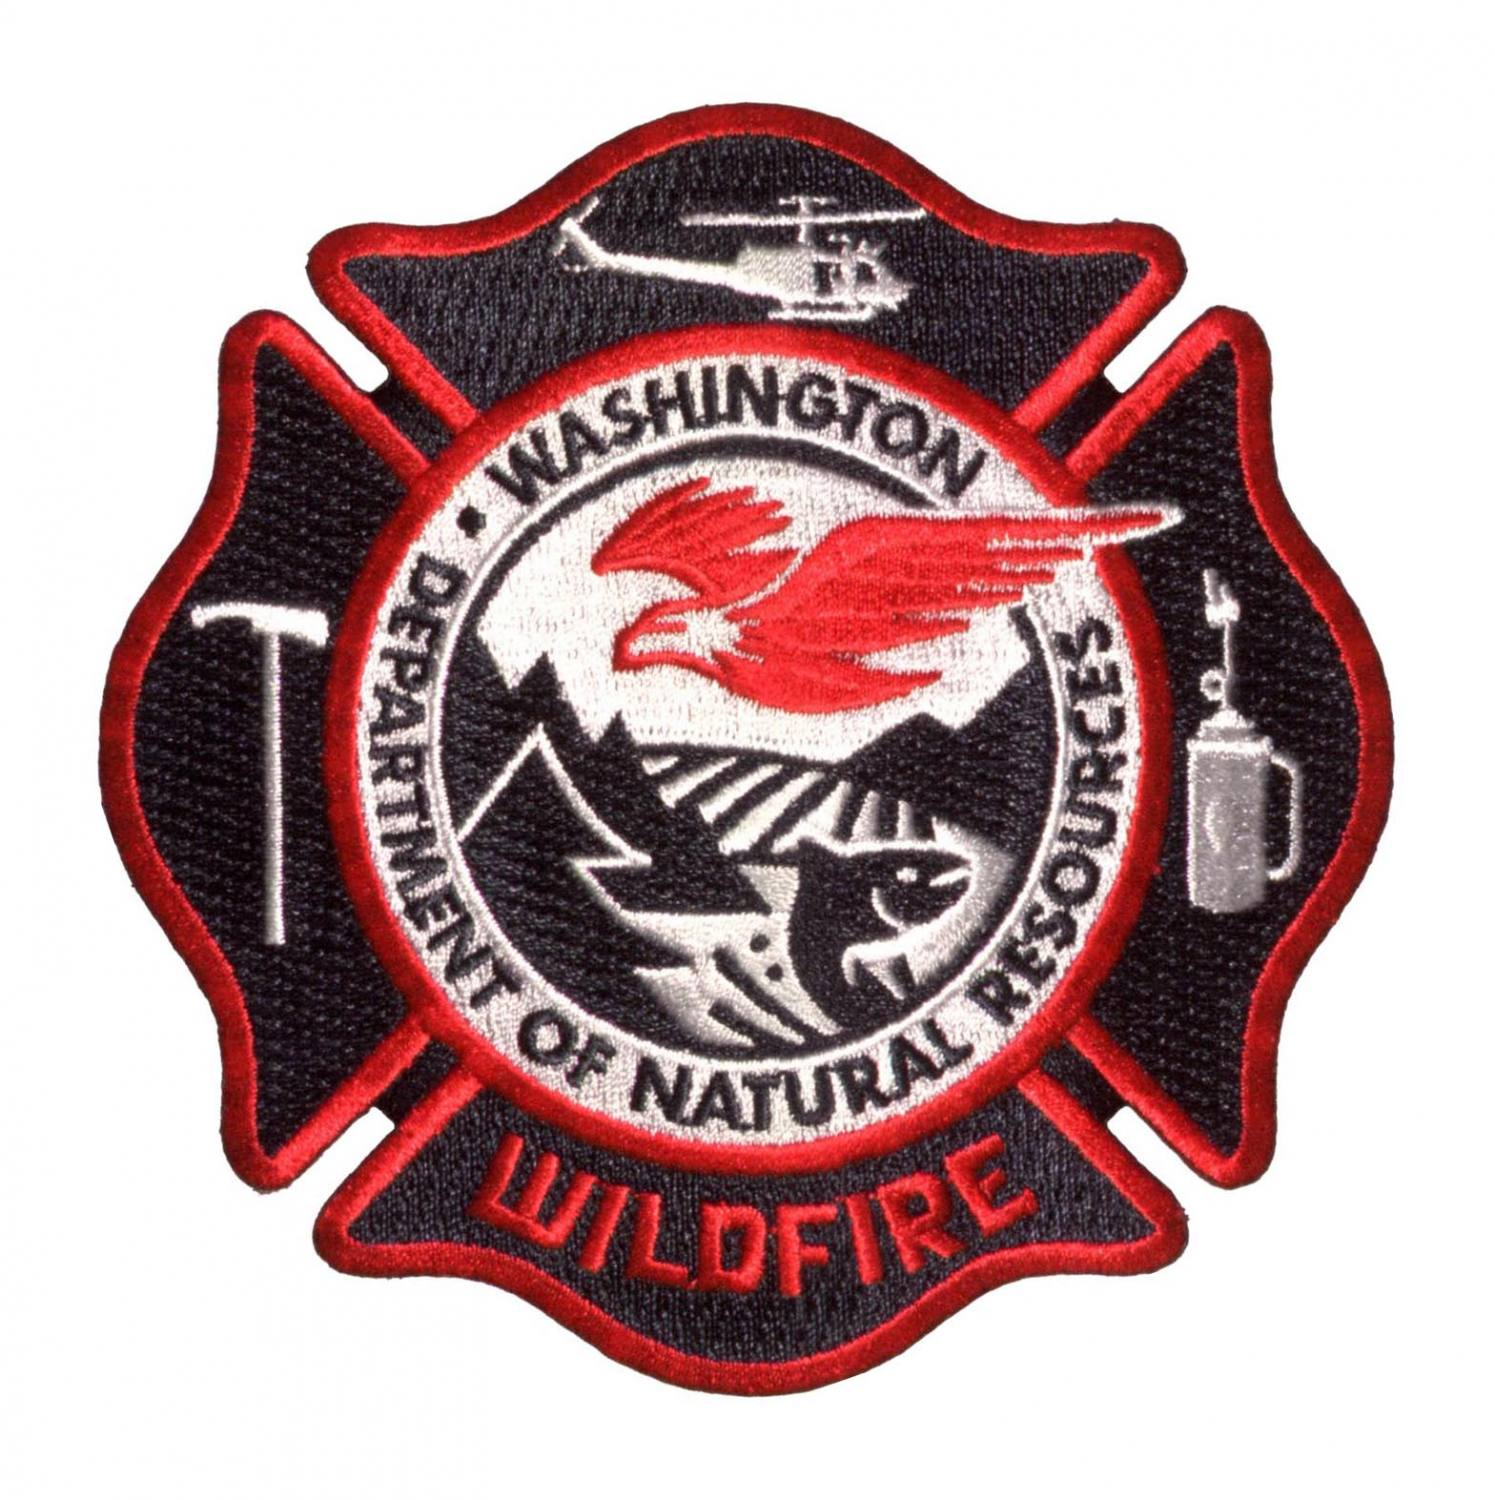 E17292-Custom-Patches-State.jpg